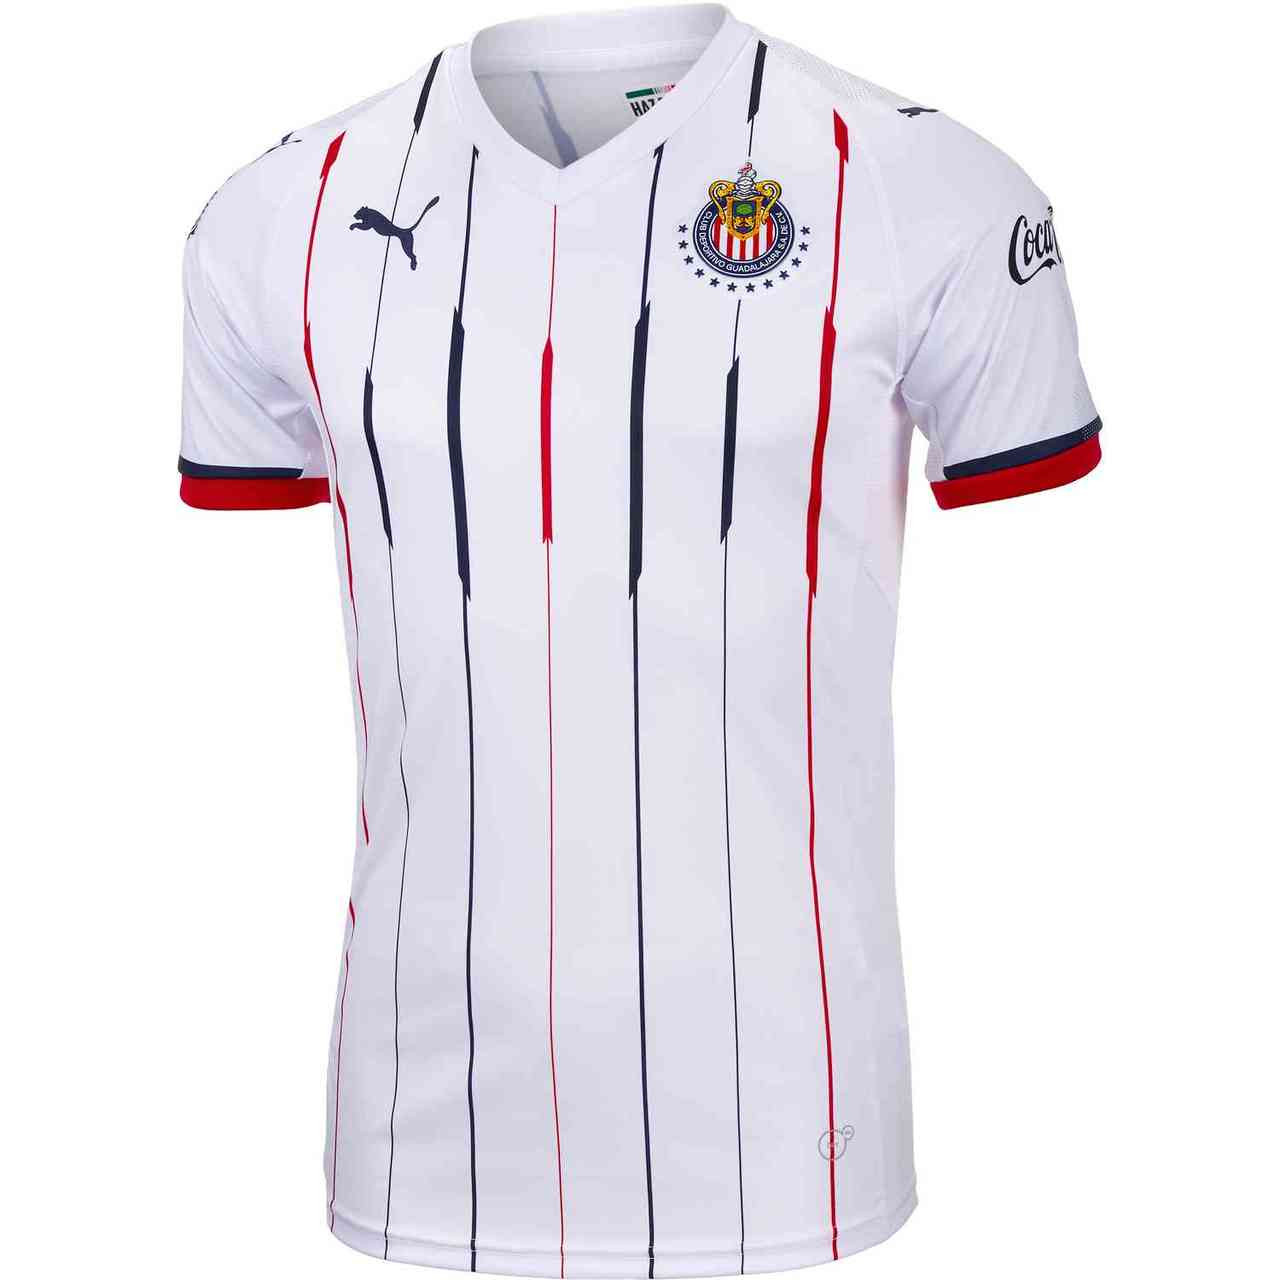 new concept 9947f a624d Puma Chivas 18/19 Replica Away Jersey - White/Red-New Navy RC (032119)